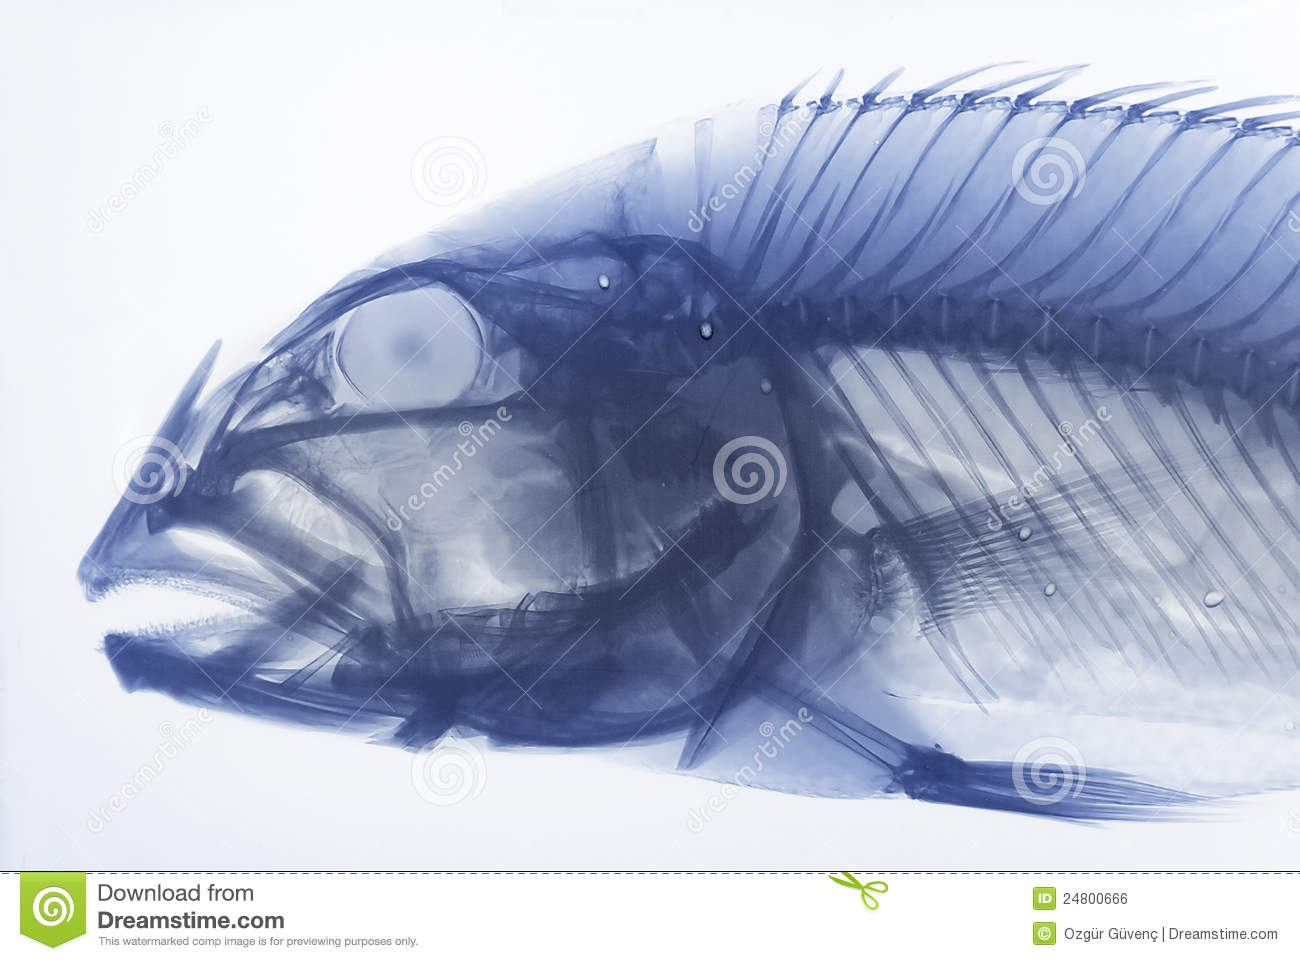 Xray Of A Fish Royalty Free Stock Image   Image  24800666